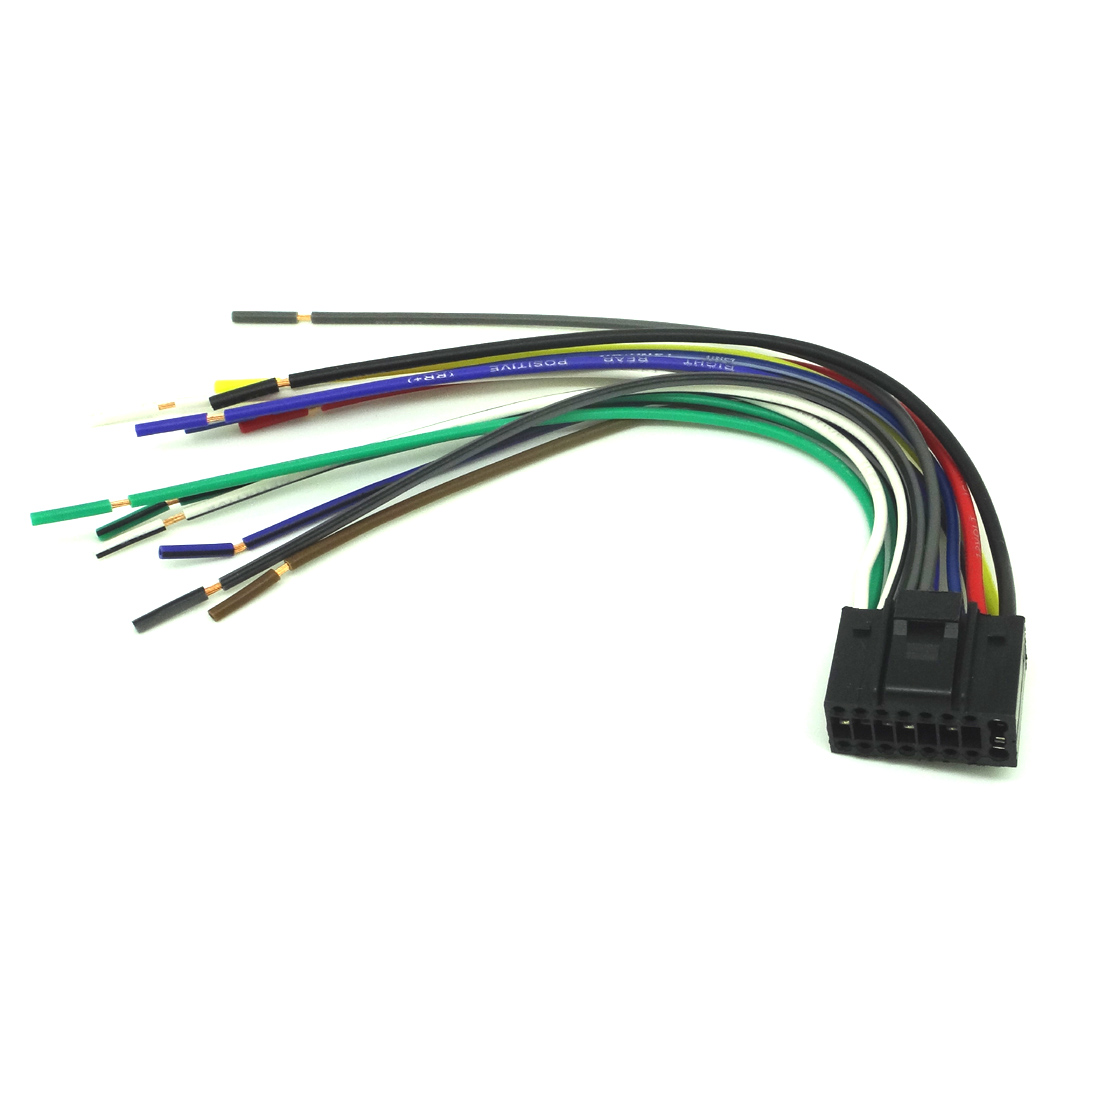 Player 16 Pin Radio Car Audio Stereo Wire Harness For Kenwood Kdc 148 Kdc 208u Kdc 217 Kdc 152